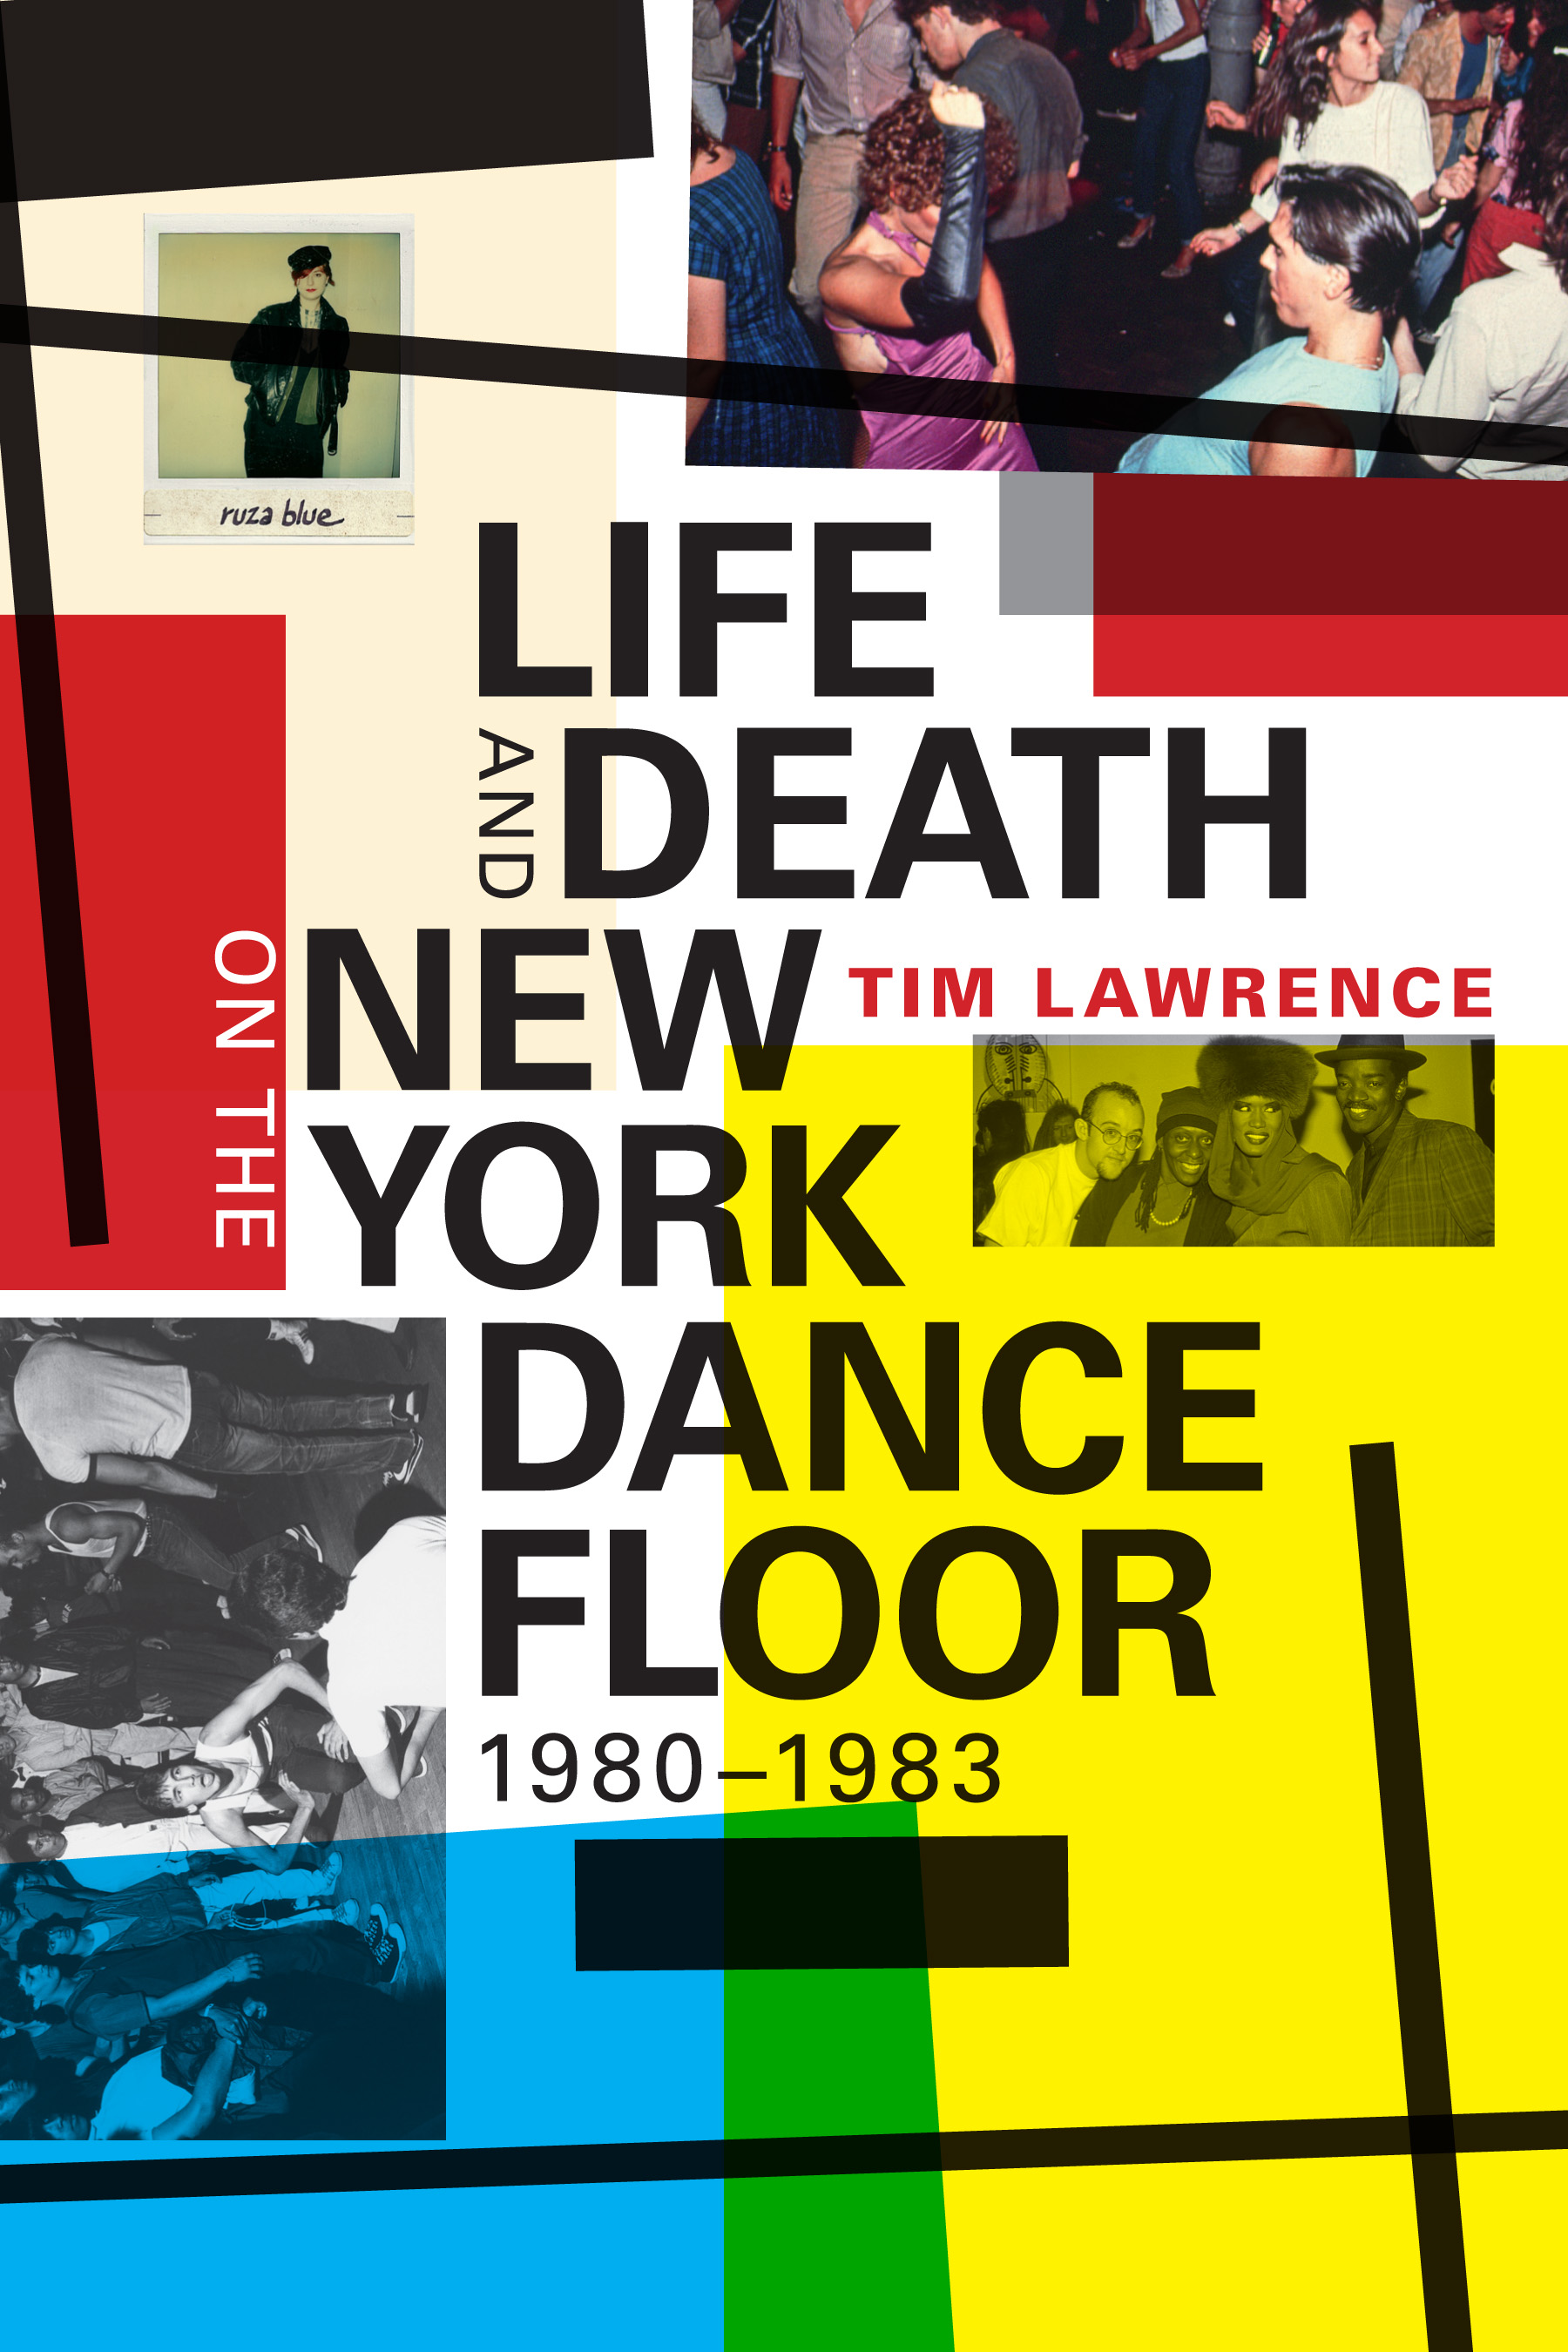 Tim Lawrence - Life And Death On The New York Dance Floor 1980-1983. Released September 30th 2016